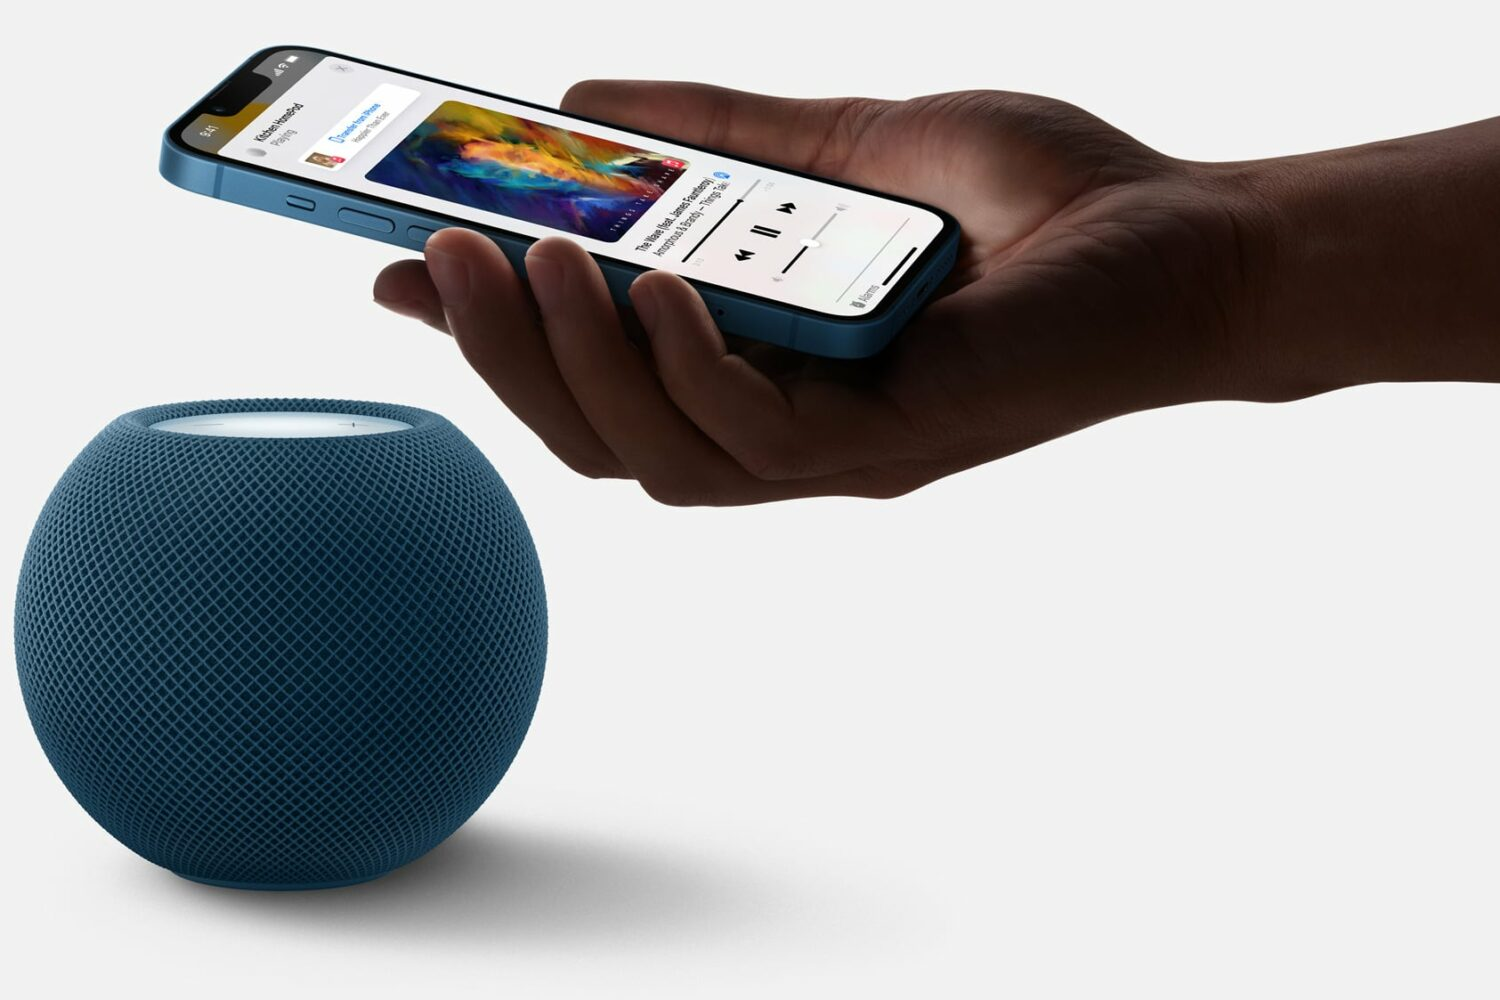 Apple's marketing image showing a male hand holding an iPhone near to a blue HomePod mini to transfer music